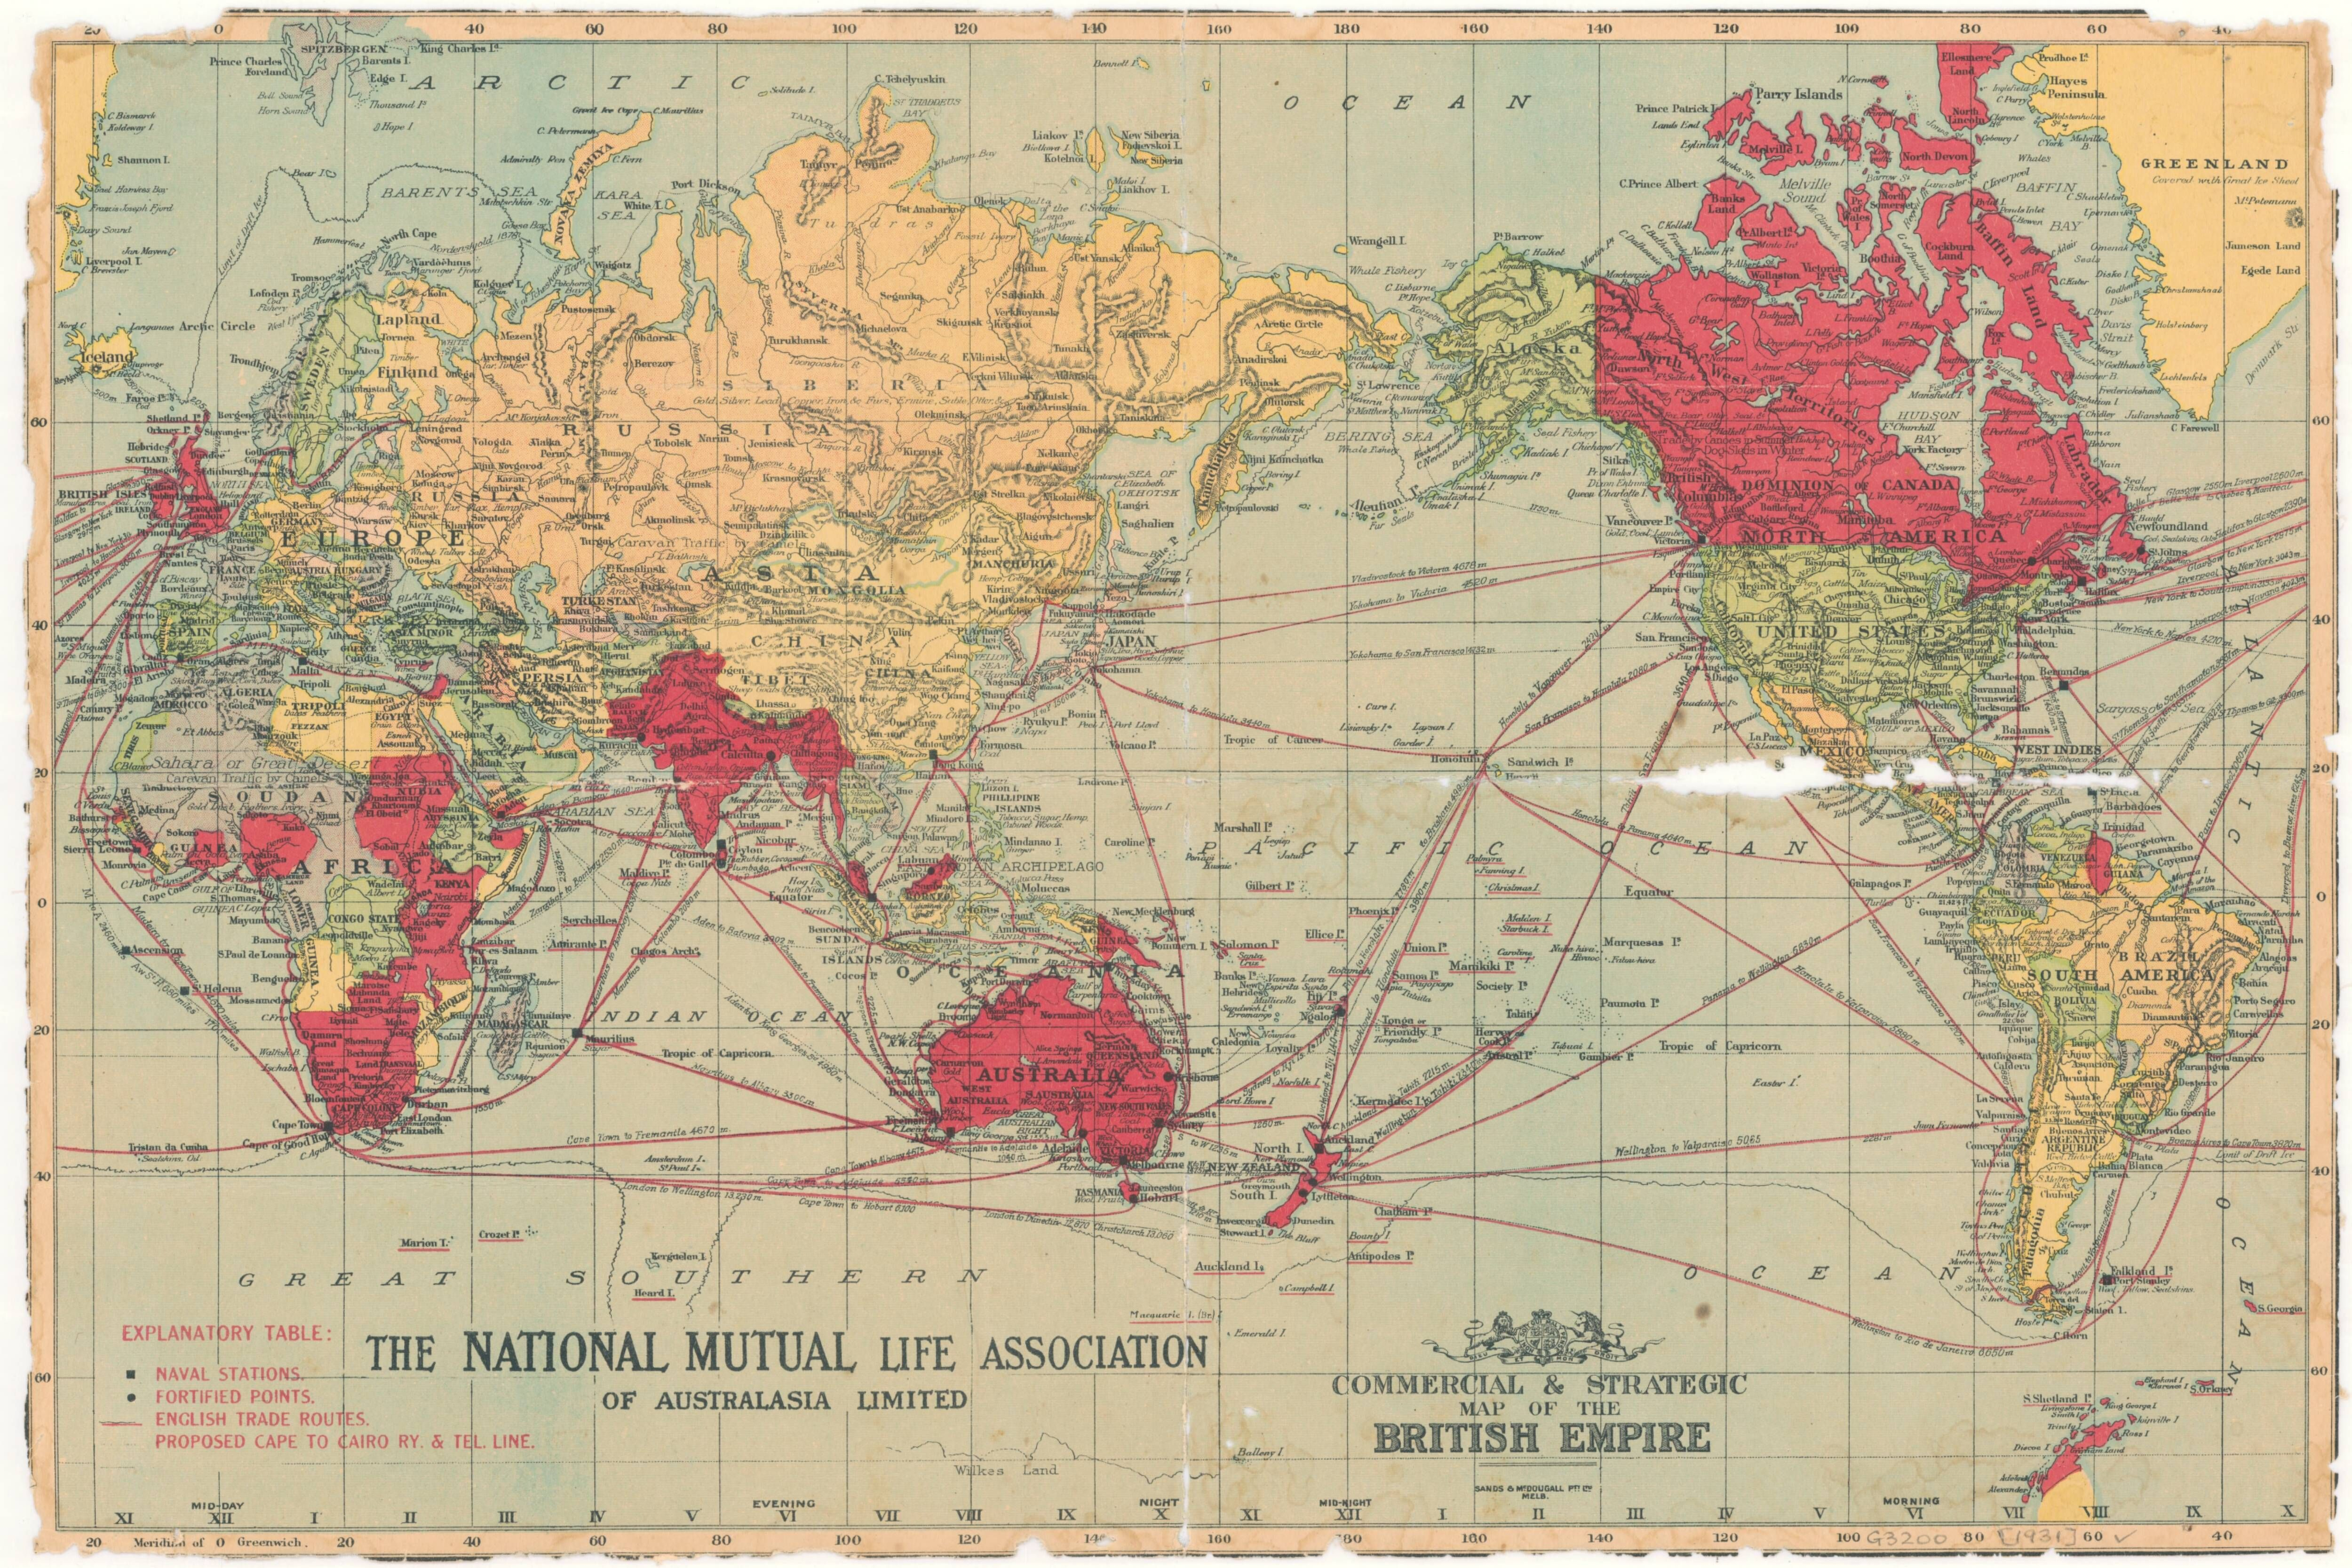 Commercial u0026 strategic map of the British